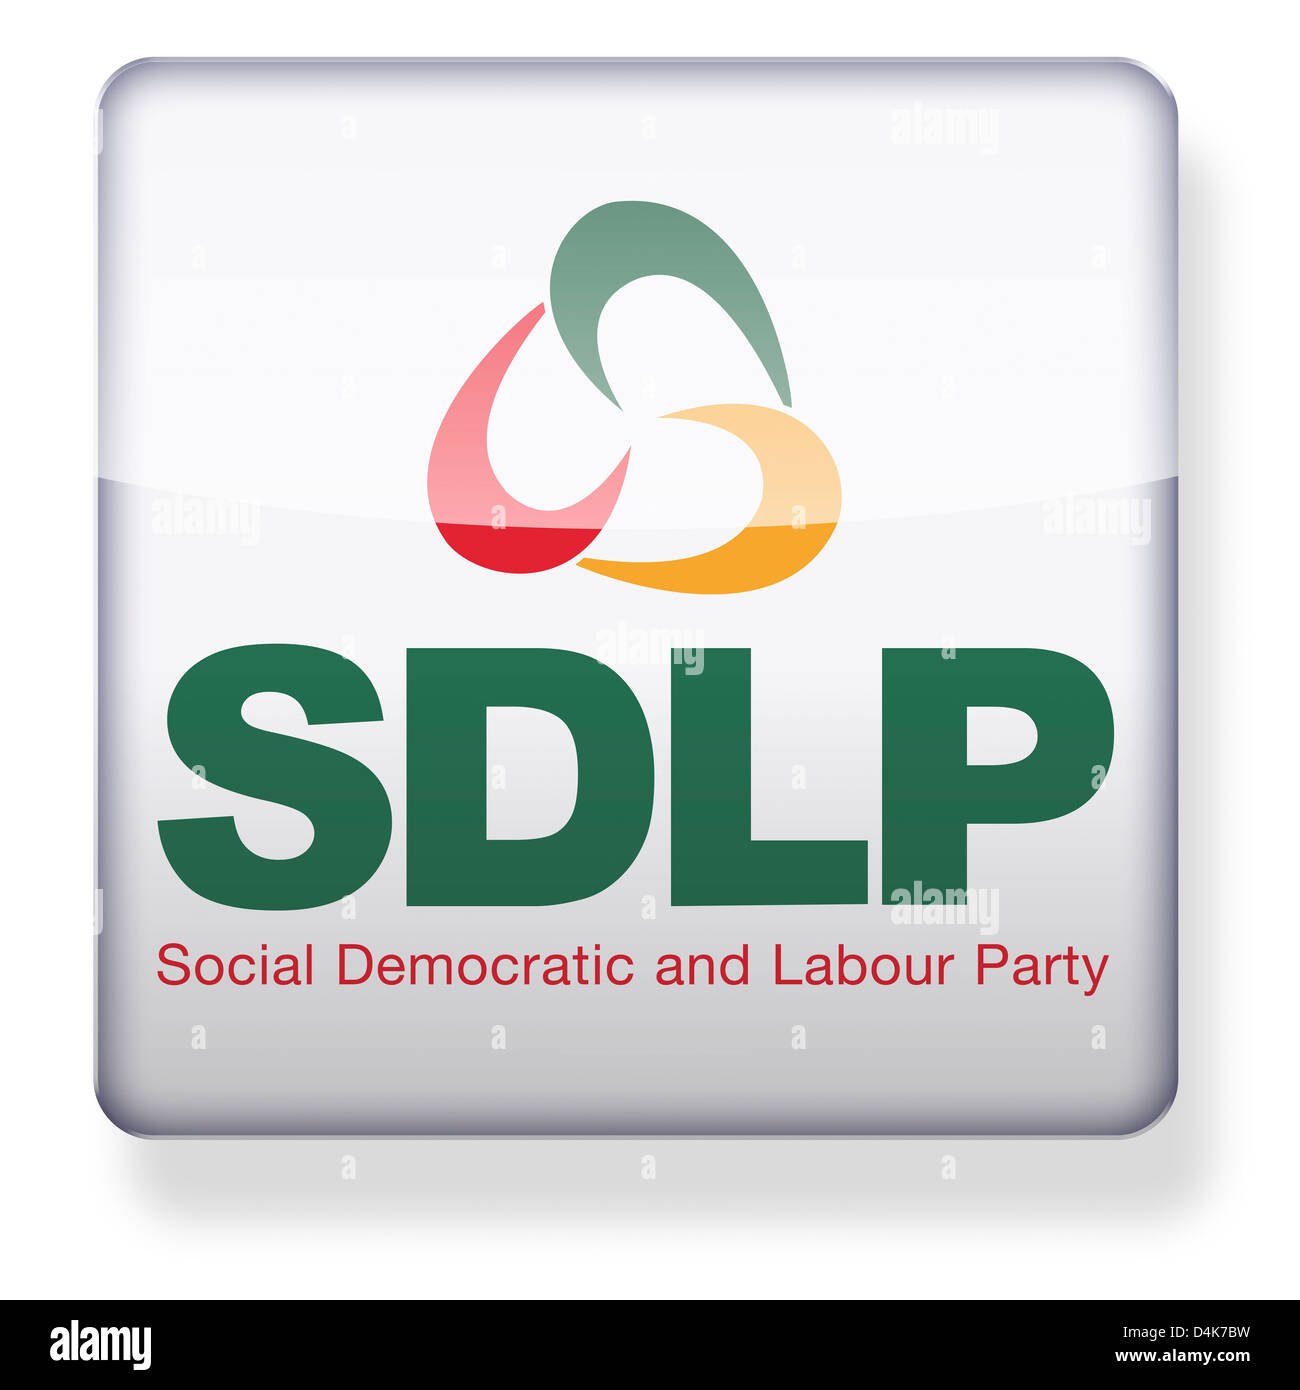 Social Democratic and Labour Party logo as an app icon. Clipping path included. - Stock Image